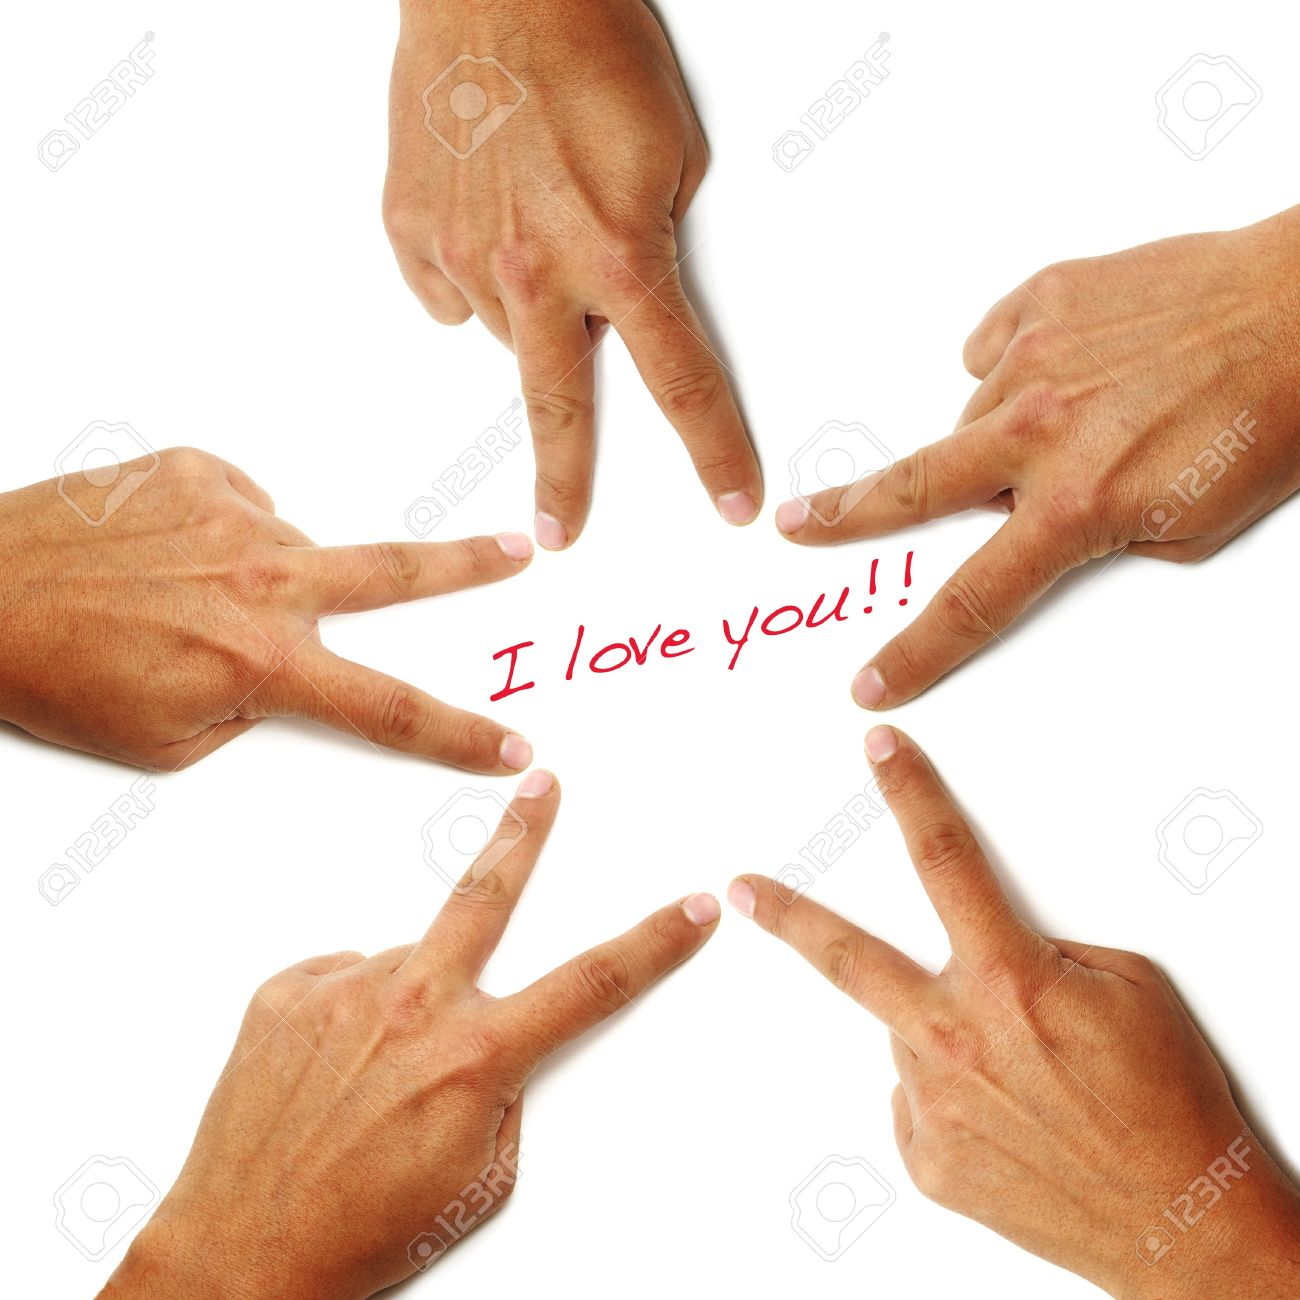 i love you written on a white background with hands drawing a star Stock Photo - 7403669